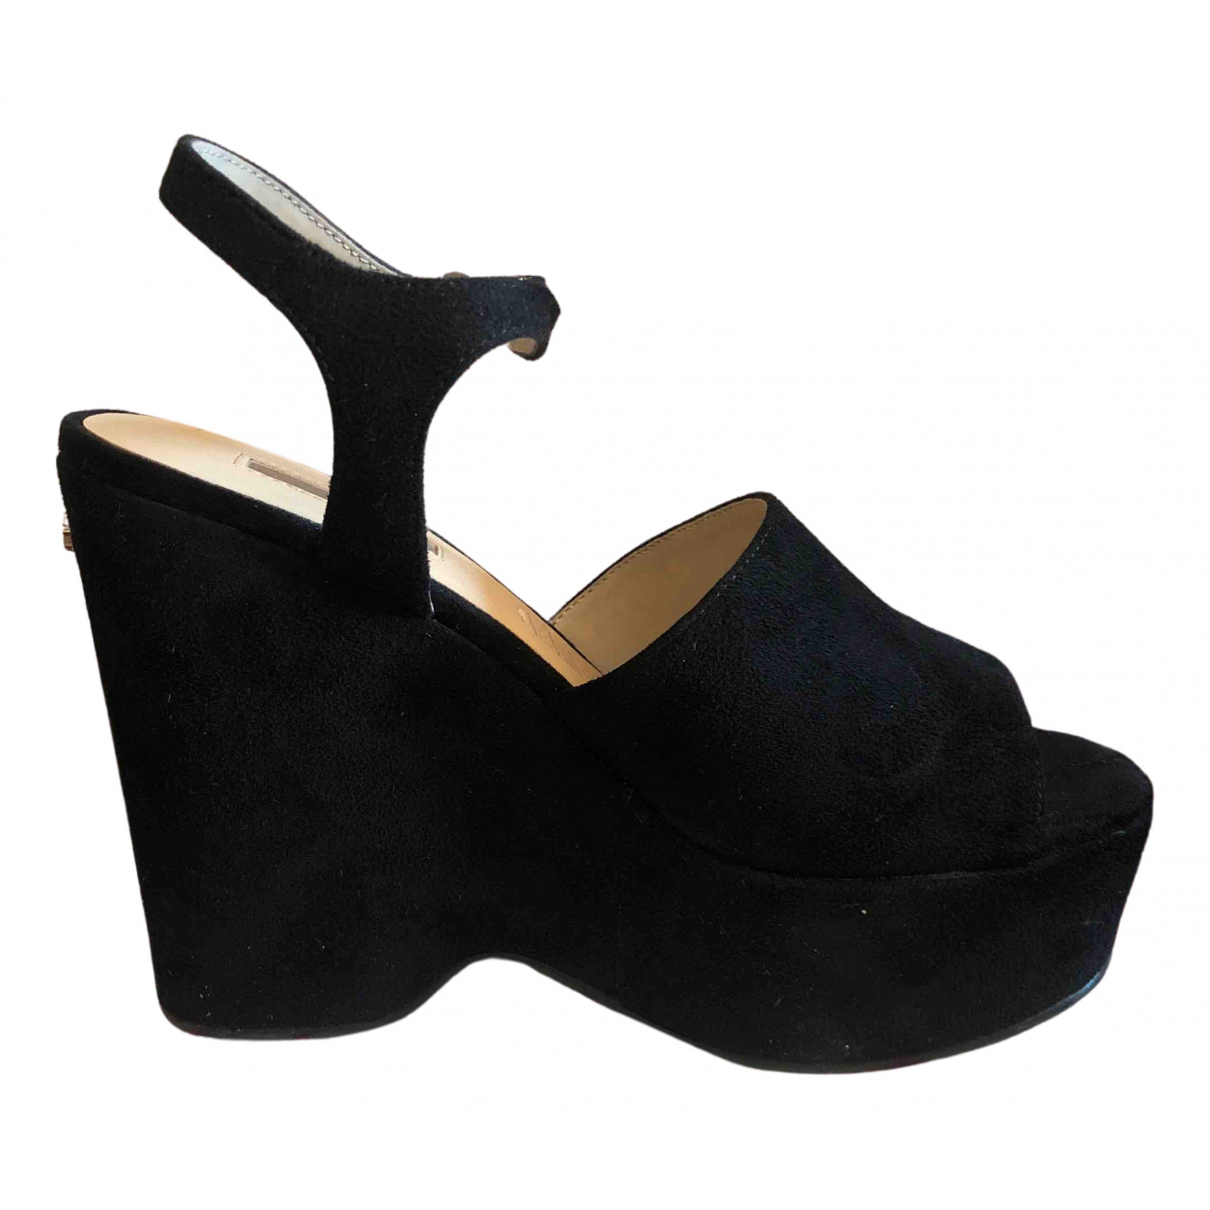 Guess N Black Suede Heels for Women 37 EU